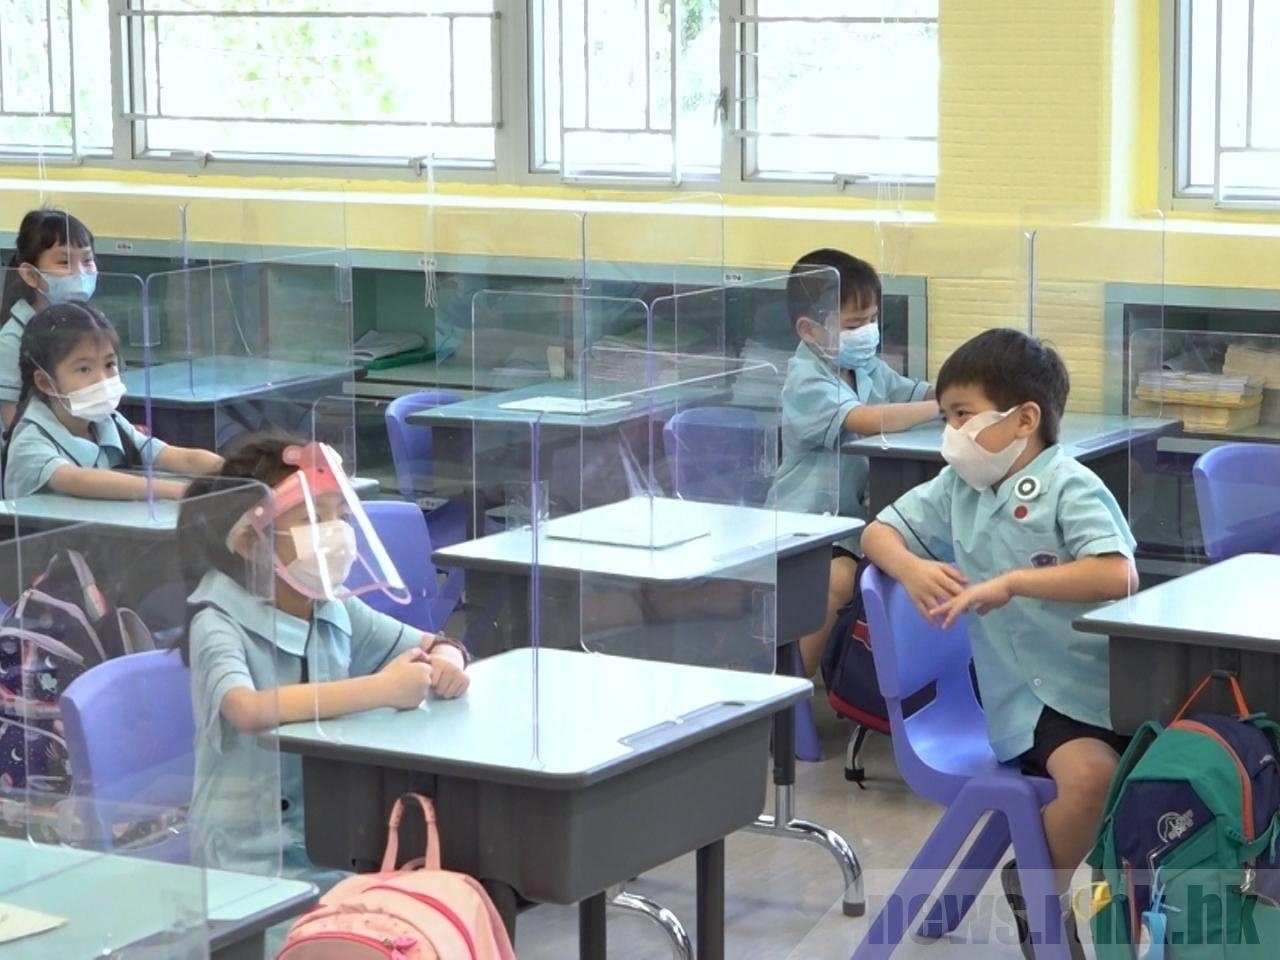 All children can go back to school for half-day classes from May 24. File photo: RTHK